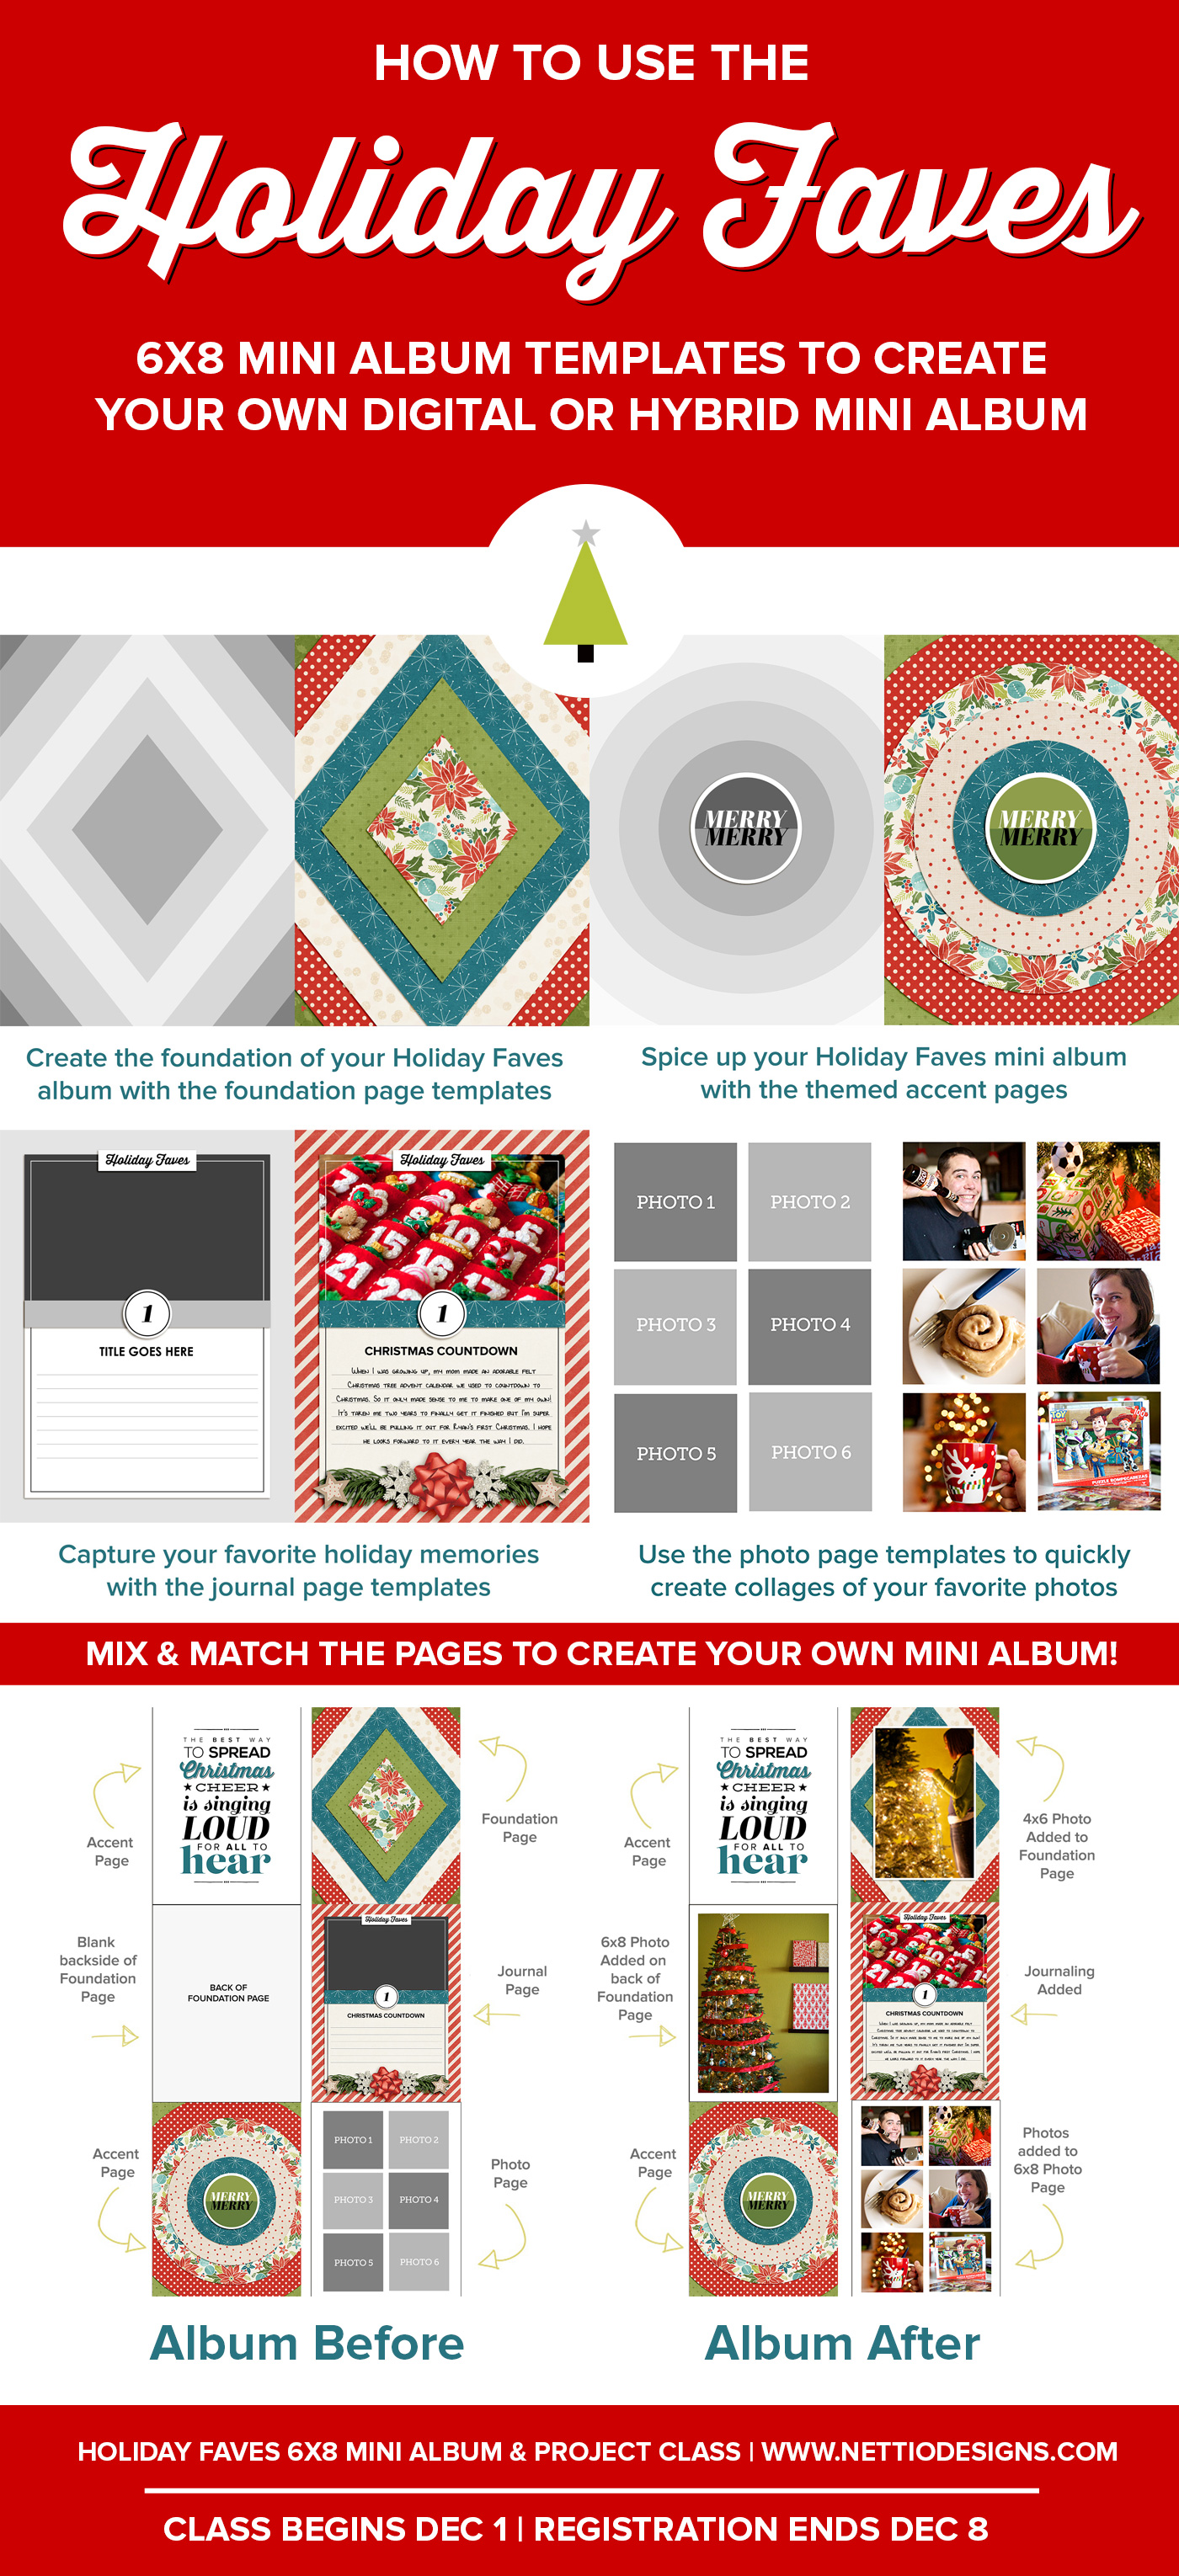 nettiodesigsn_Holiday-Faves-How-To-full